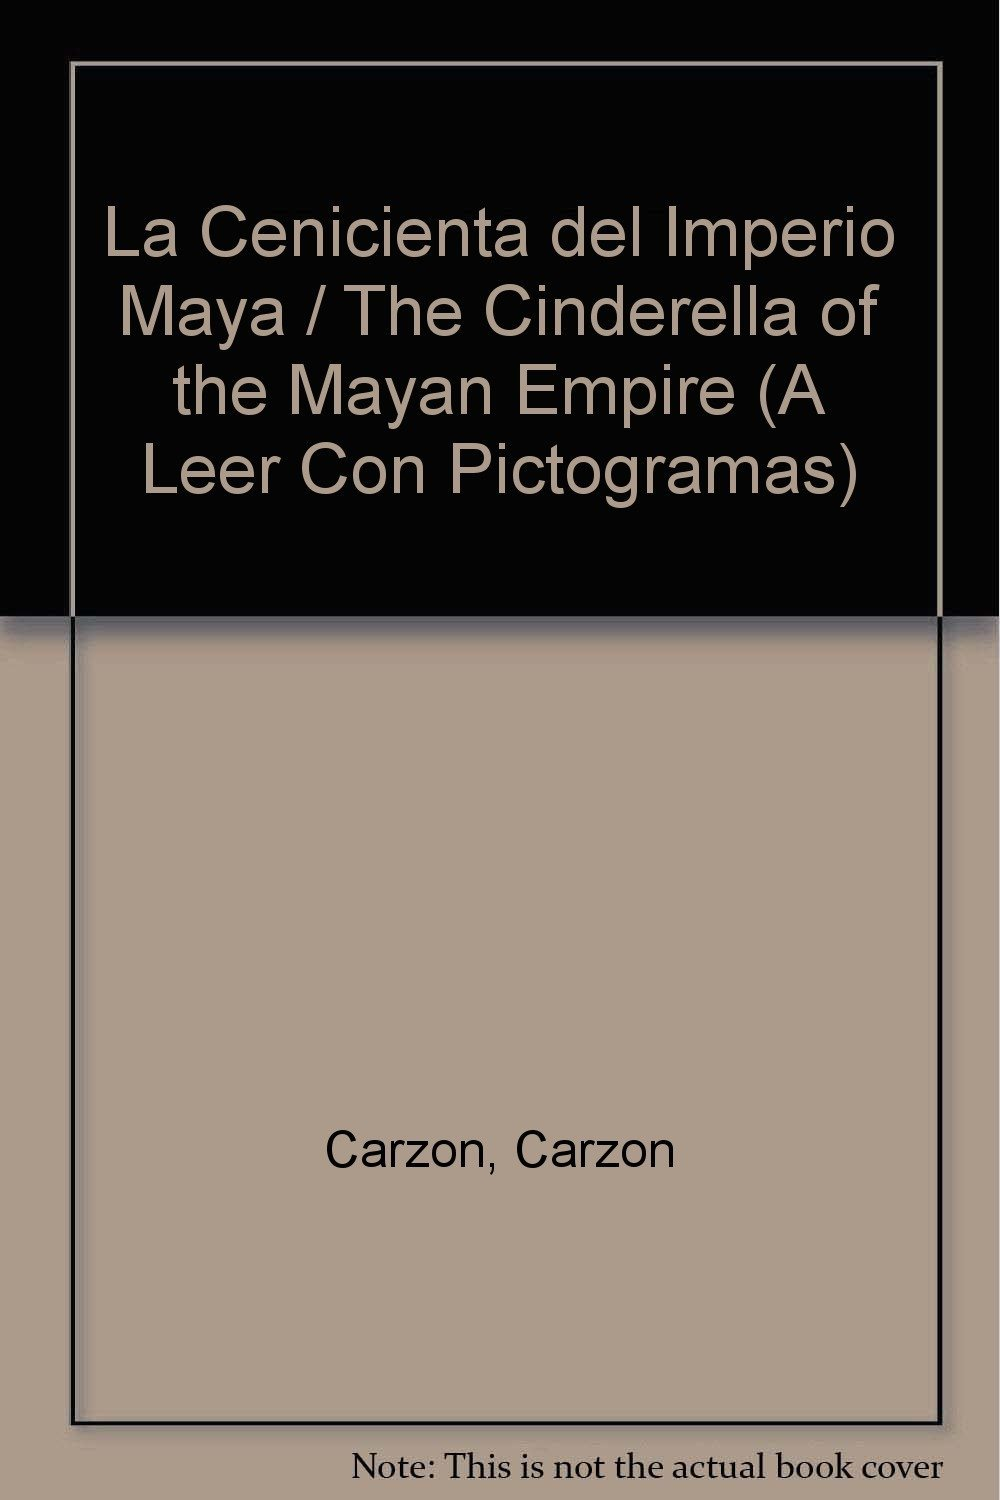 La Cenicienta del Imperio Maya / The Cinderella of the Mayan Empire (A Leer Con Pictogramas) (Spanish Edition) pdf